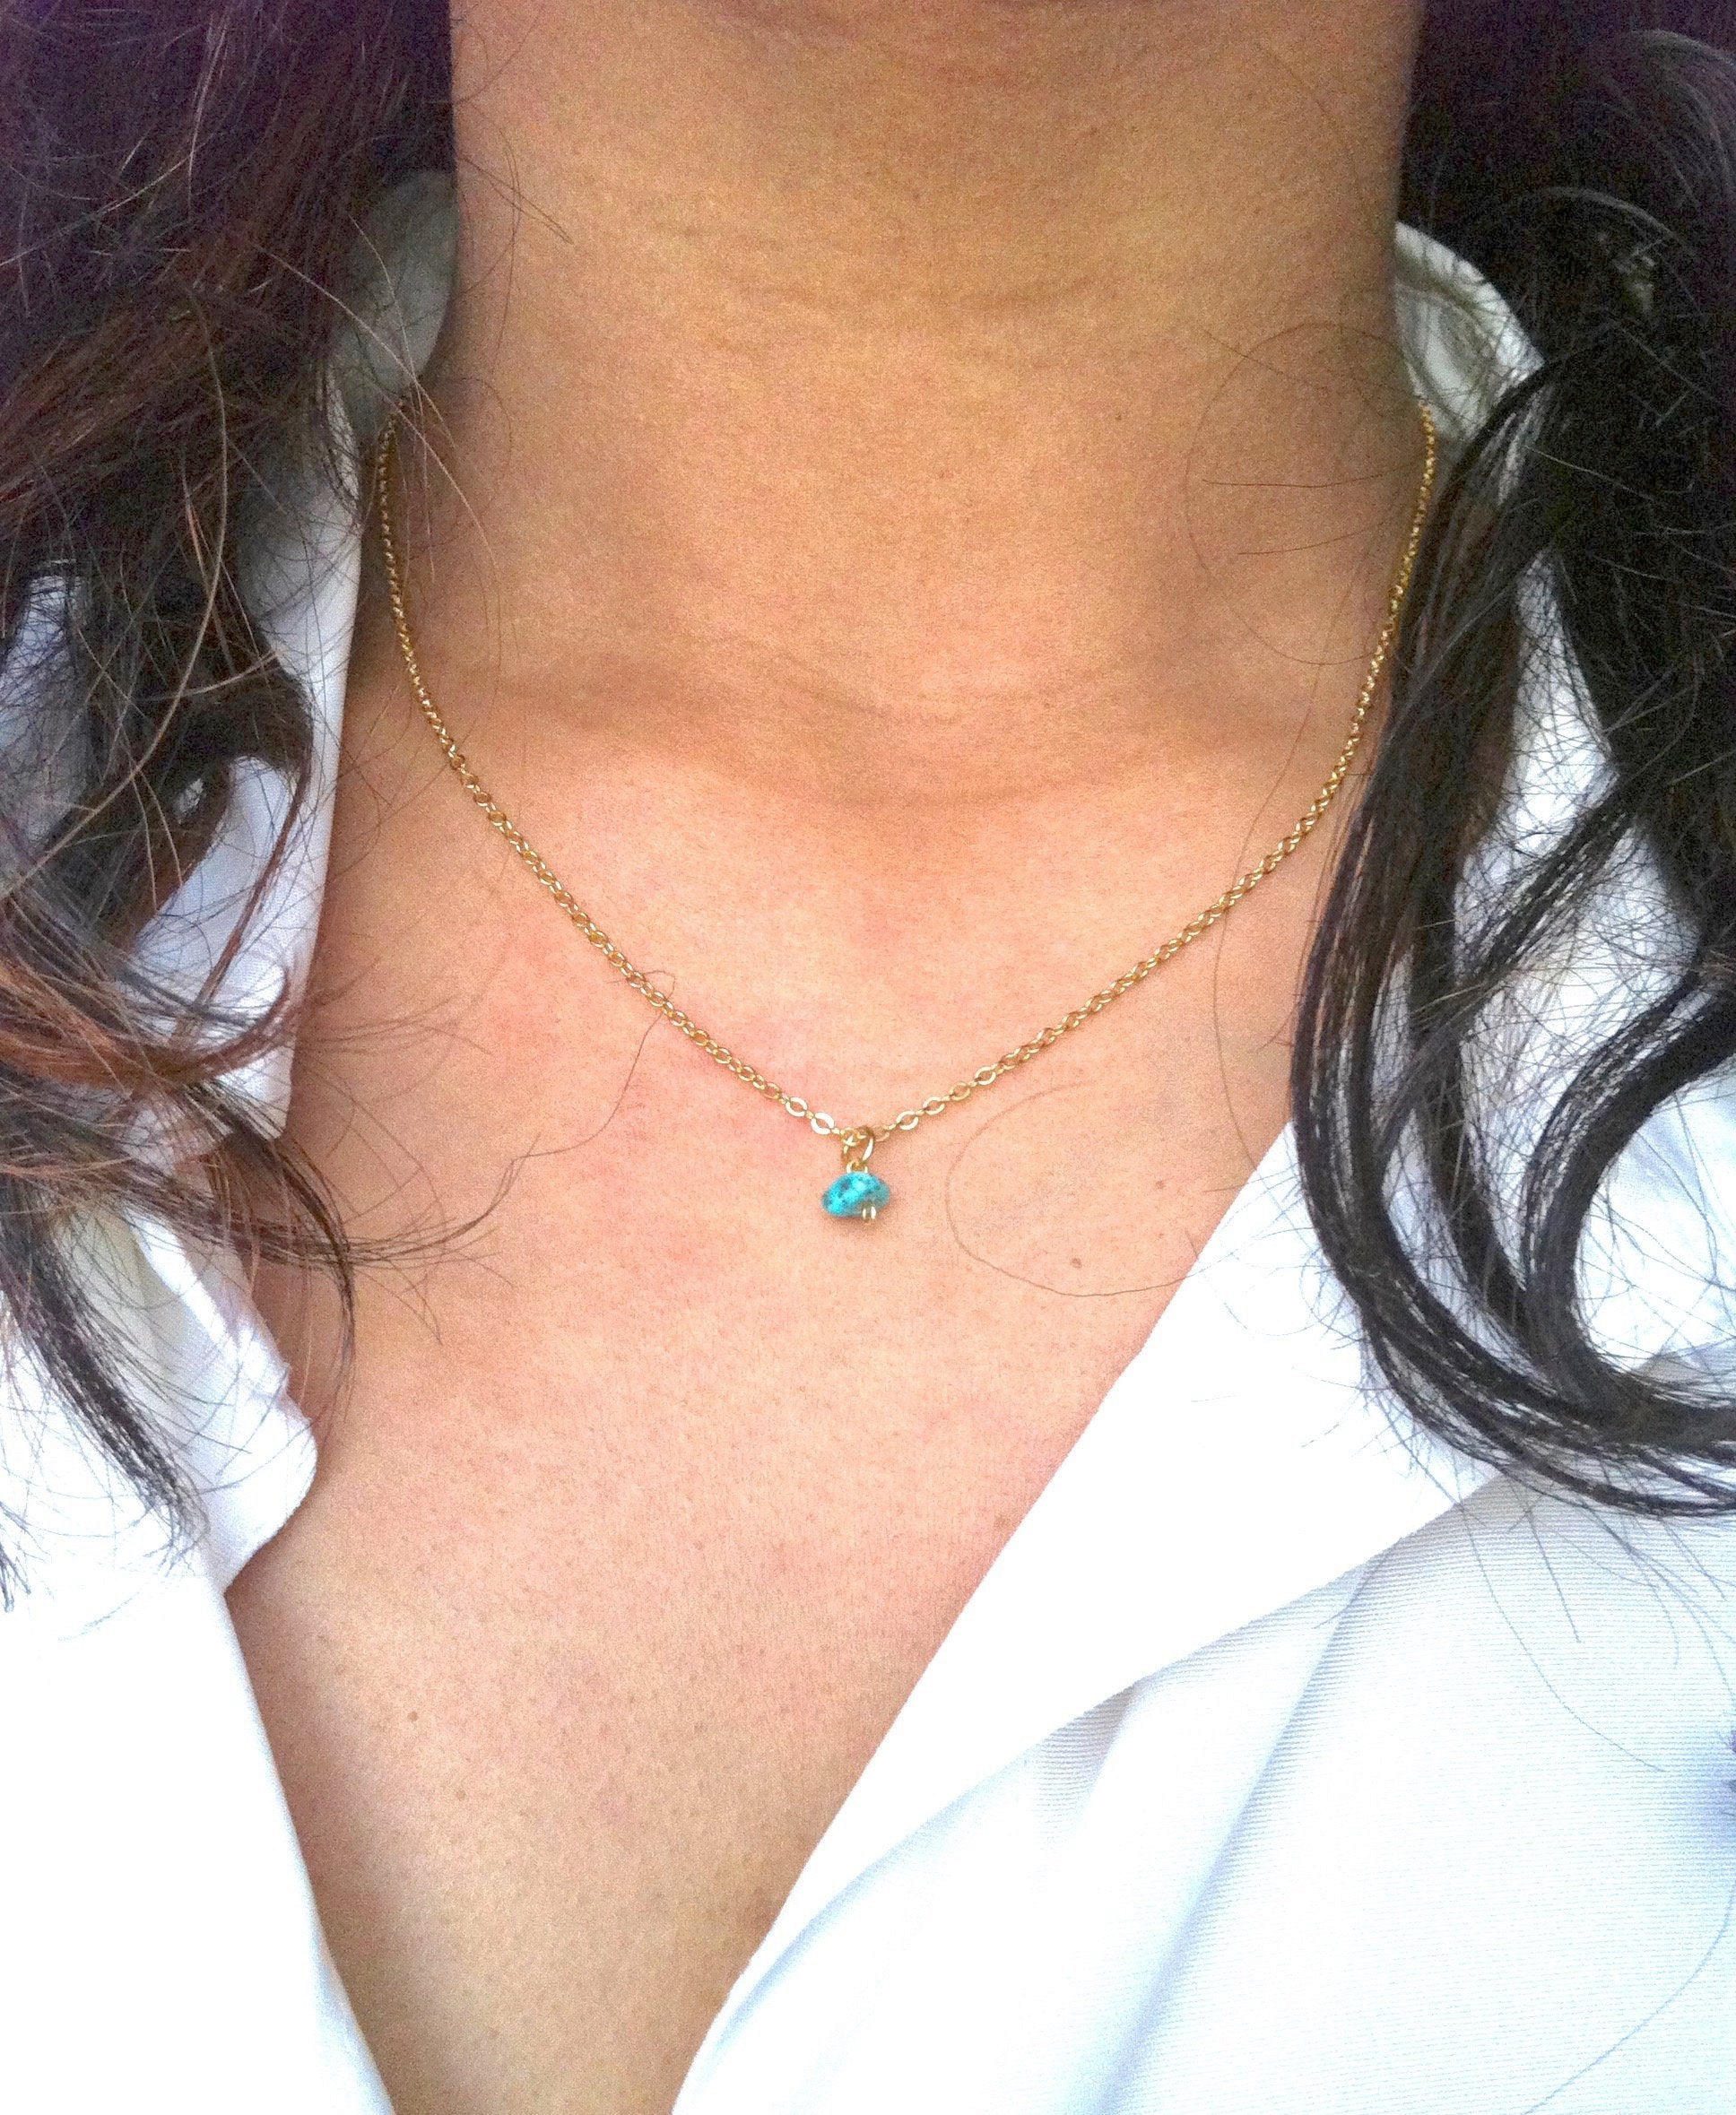 Minimalist Delicate Turquoise Drop Necklace | IB Jewelry